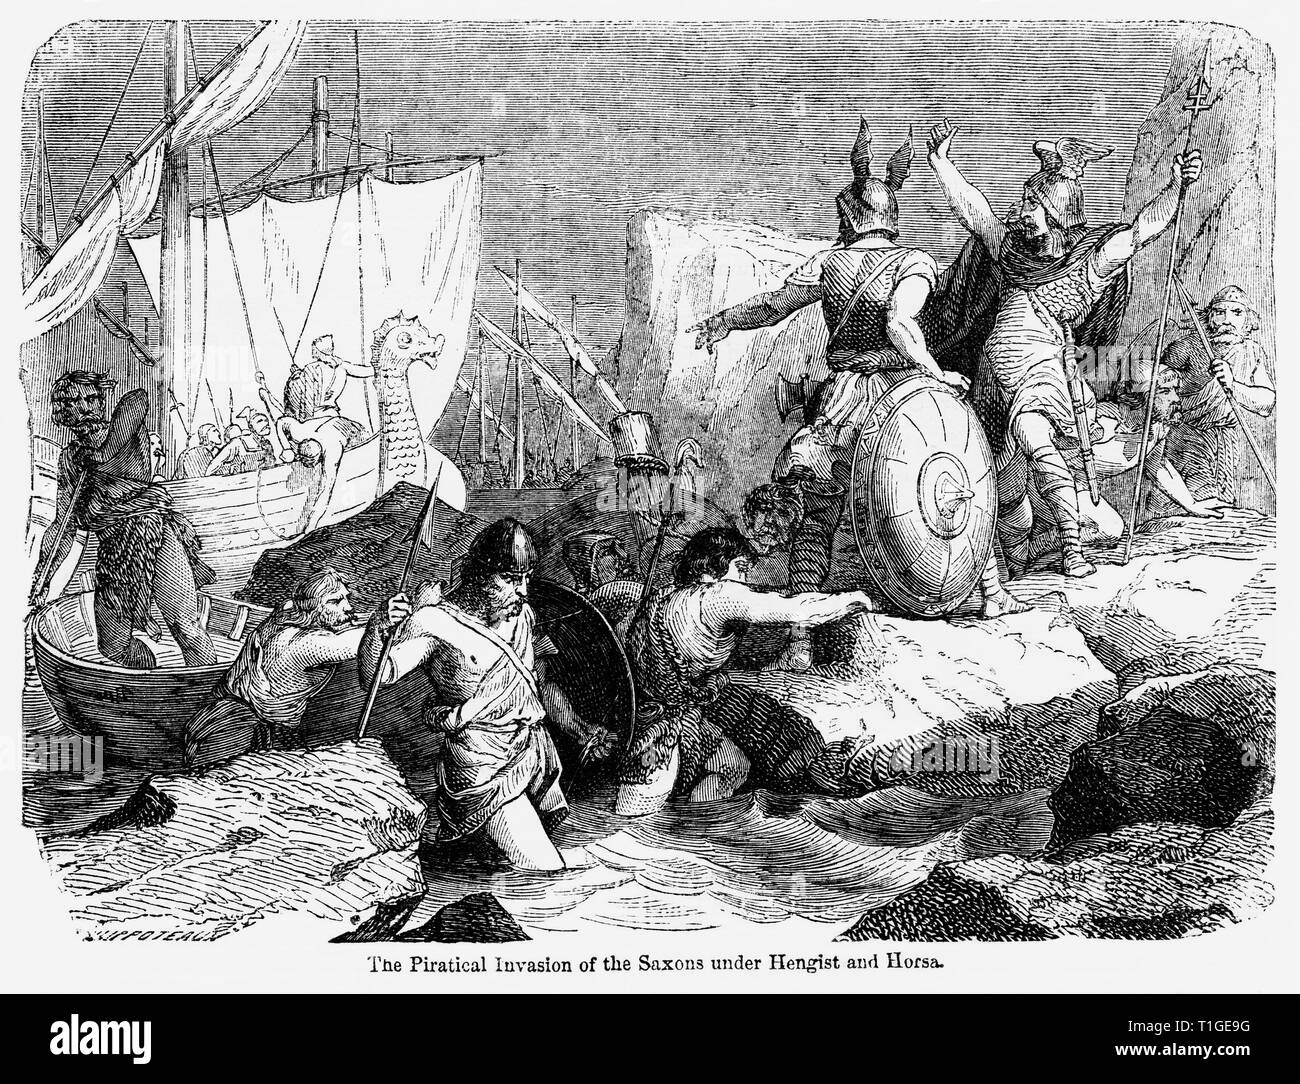 The Piratical Invasion of the Saxons under Hengist and Horsa, Illustration from John Cassell's Illustrated History of England, Vol. I from the earliest period to the reign of Edward the Fourth, Cassell, Petter and Galpin, 1857 - Stock Image